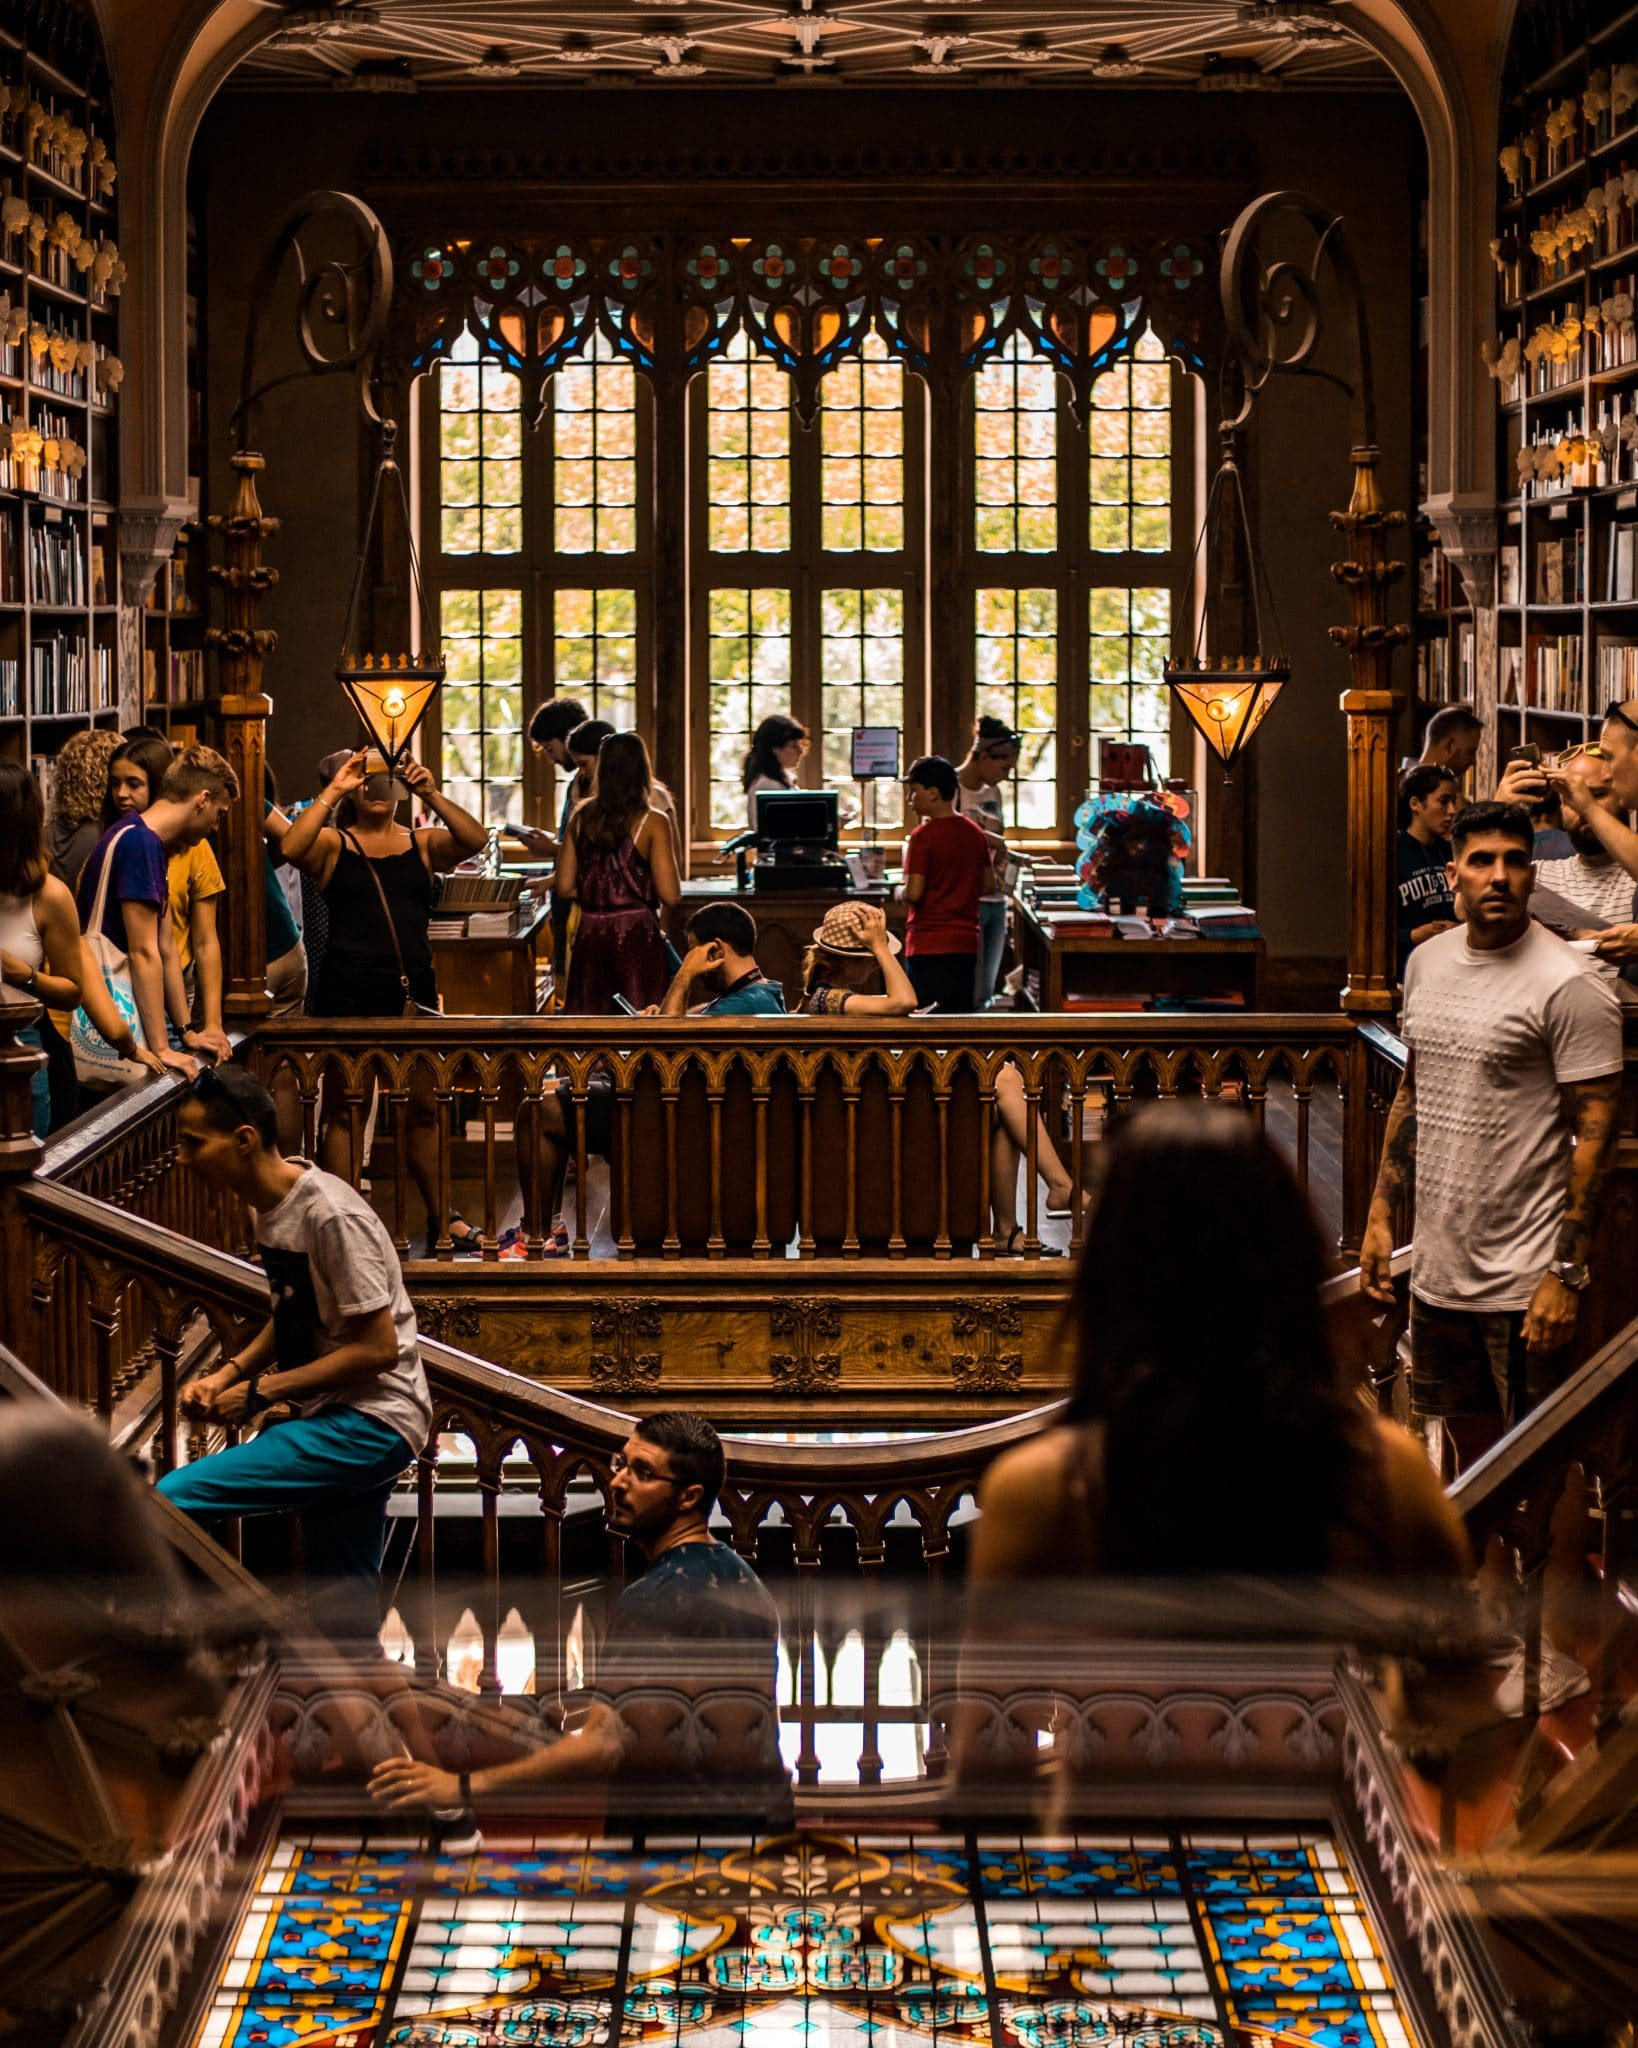 College students enjoying time in a library for free.